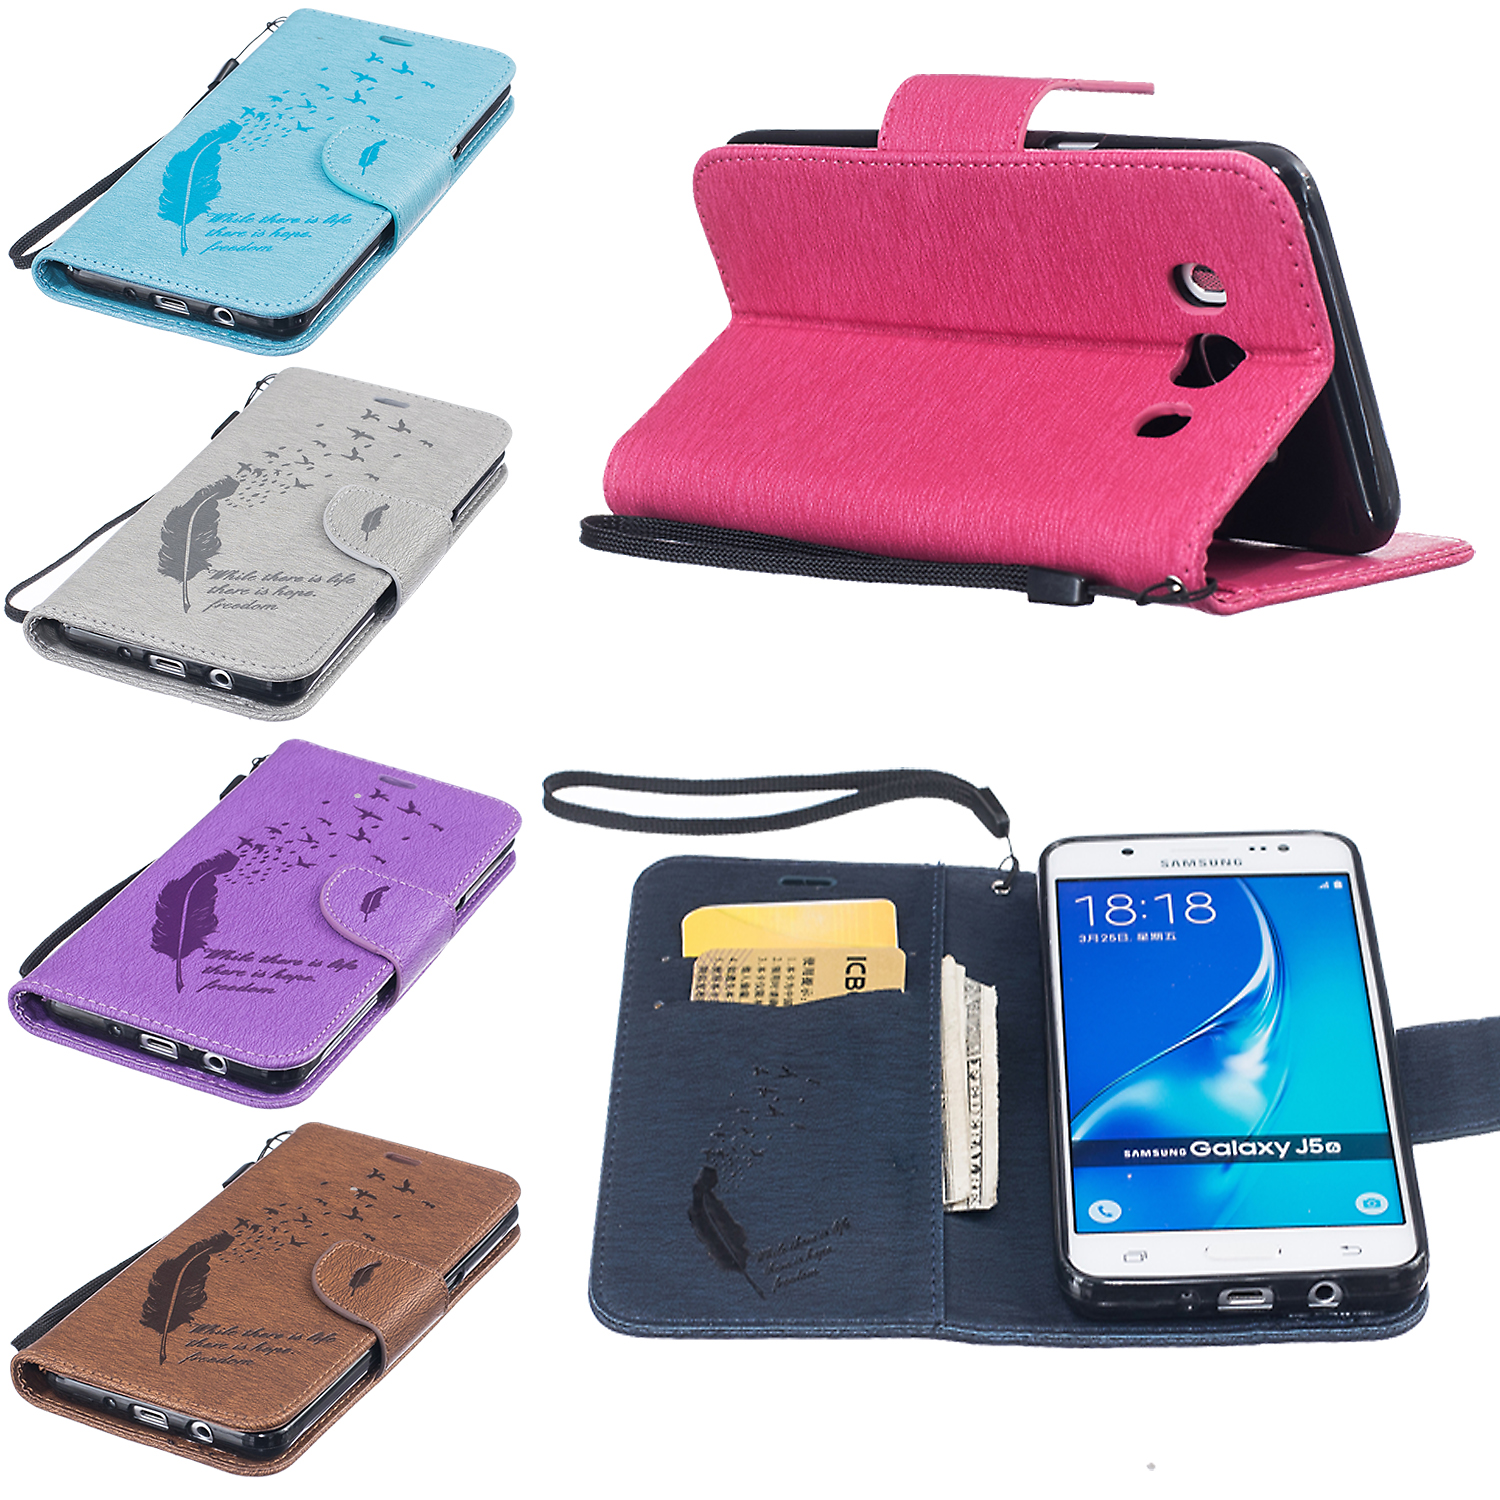 Pu leather case for samsung galaxy a7 2016 a710 peacock feather - Luxury Feather Leather Wallet Flip Stand Case For Samsung Galaxy A3 A5 J5 J3 2016 A310